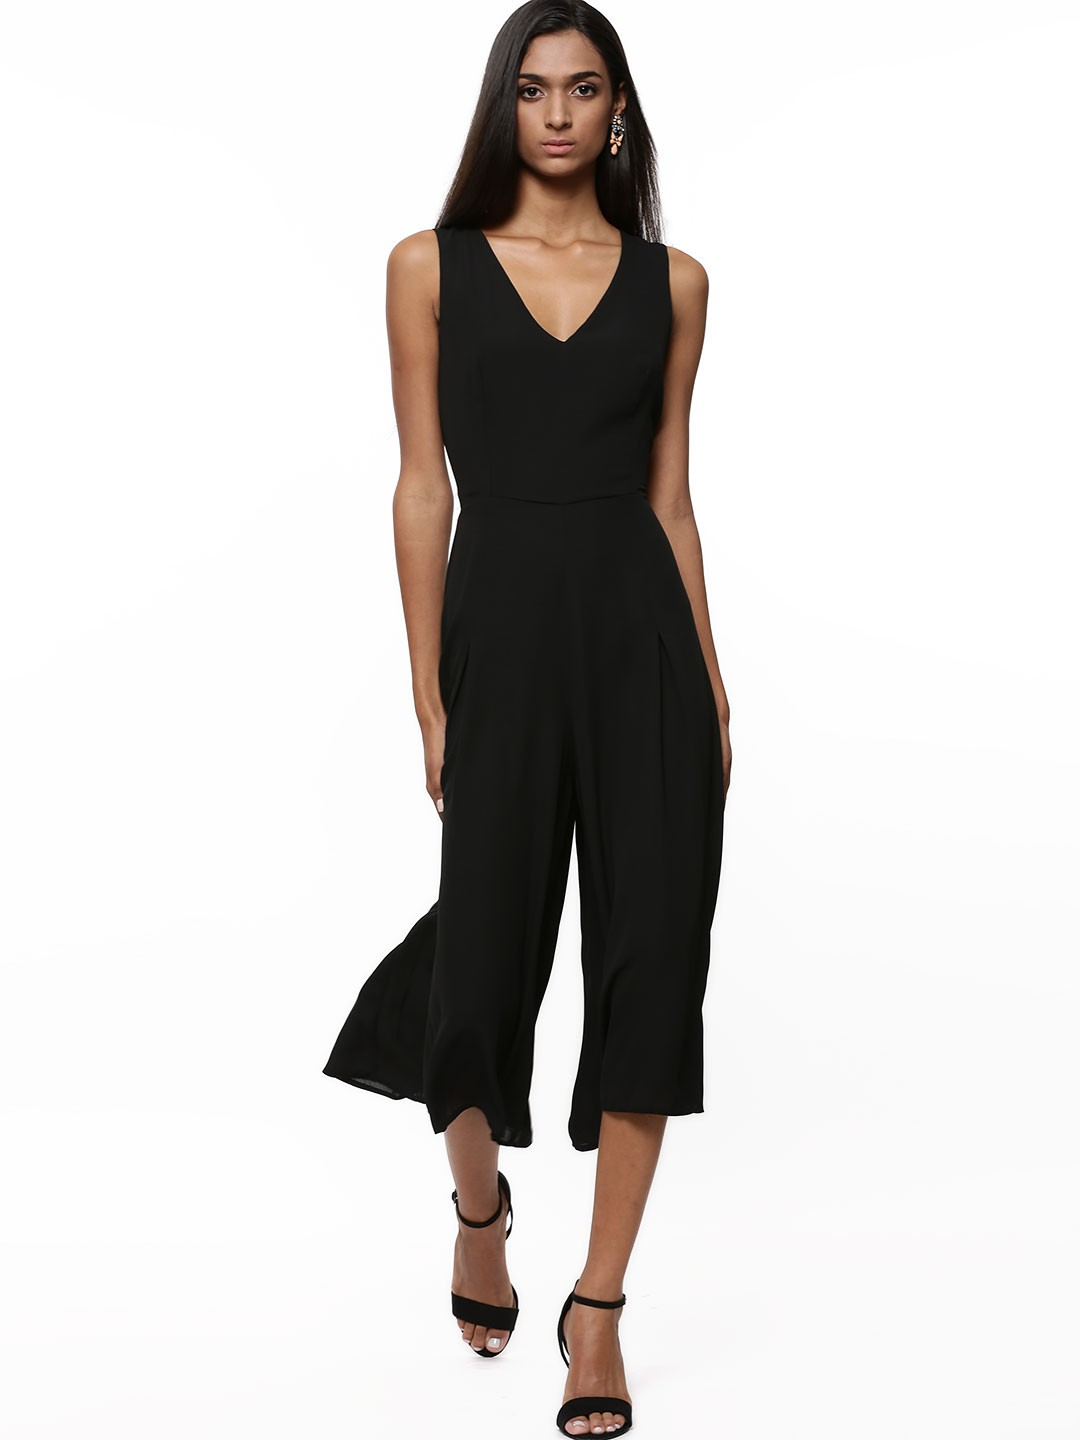 jumpsuits Our jumpsuits come in a multitude of styles, colours and - Sizes. Find your favourite, whether it is a sophisticated halterneck jumpsuit with pleats, a sporty summer version with shorts or a comfortable wrap over jumpsuit in a soft fabric.